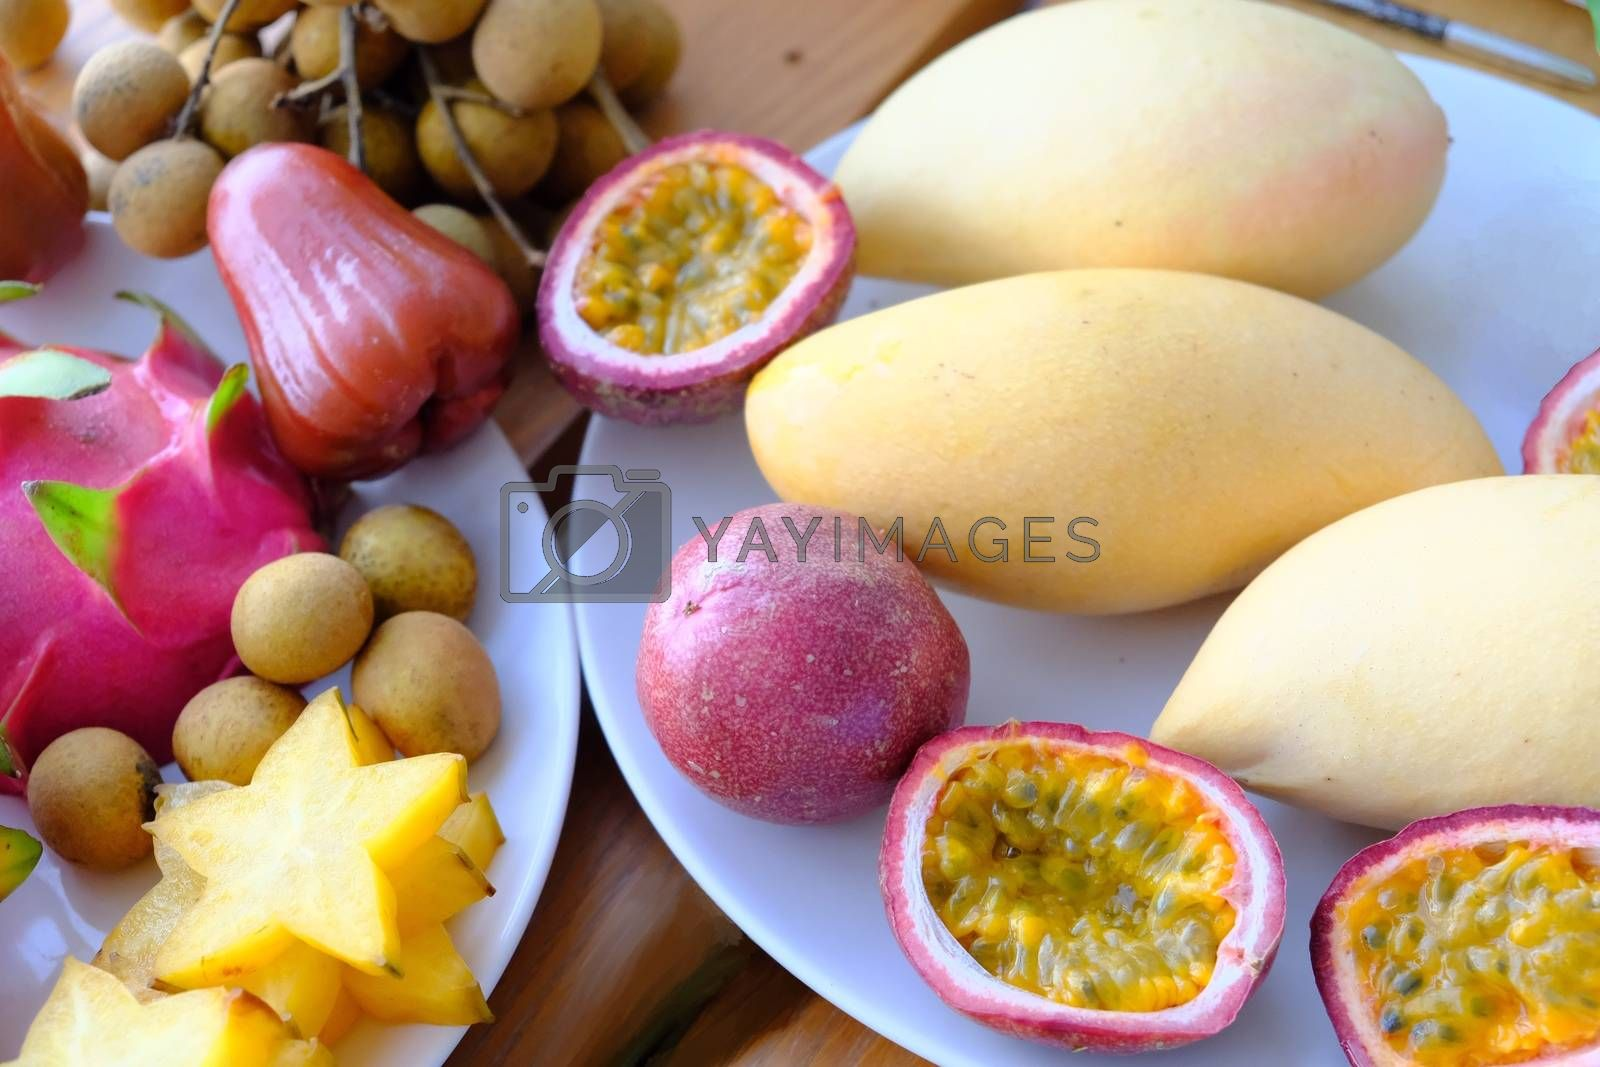 mix tropical fruits longan, mango, Rose apples, dragon fruit, Carambola and whole and cut passion fruits (maracuya) on the plate.